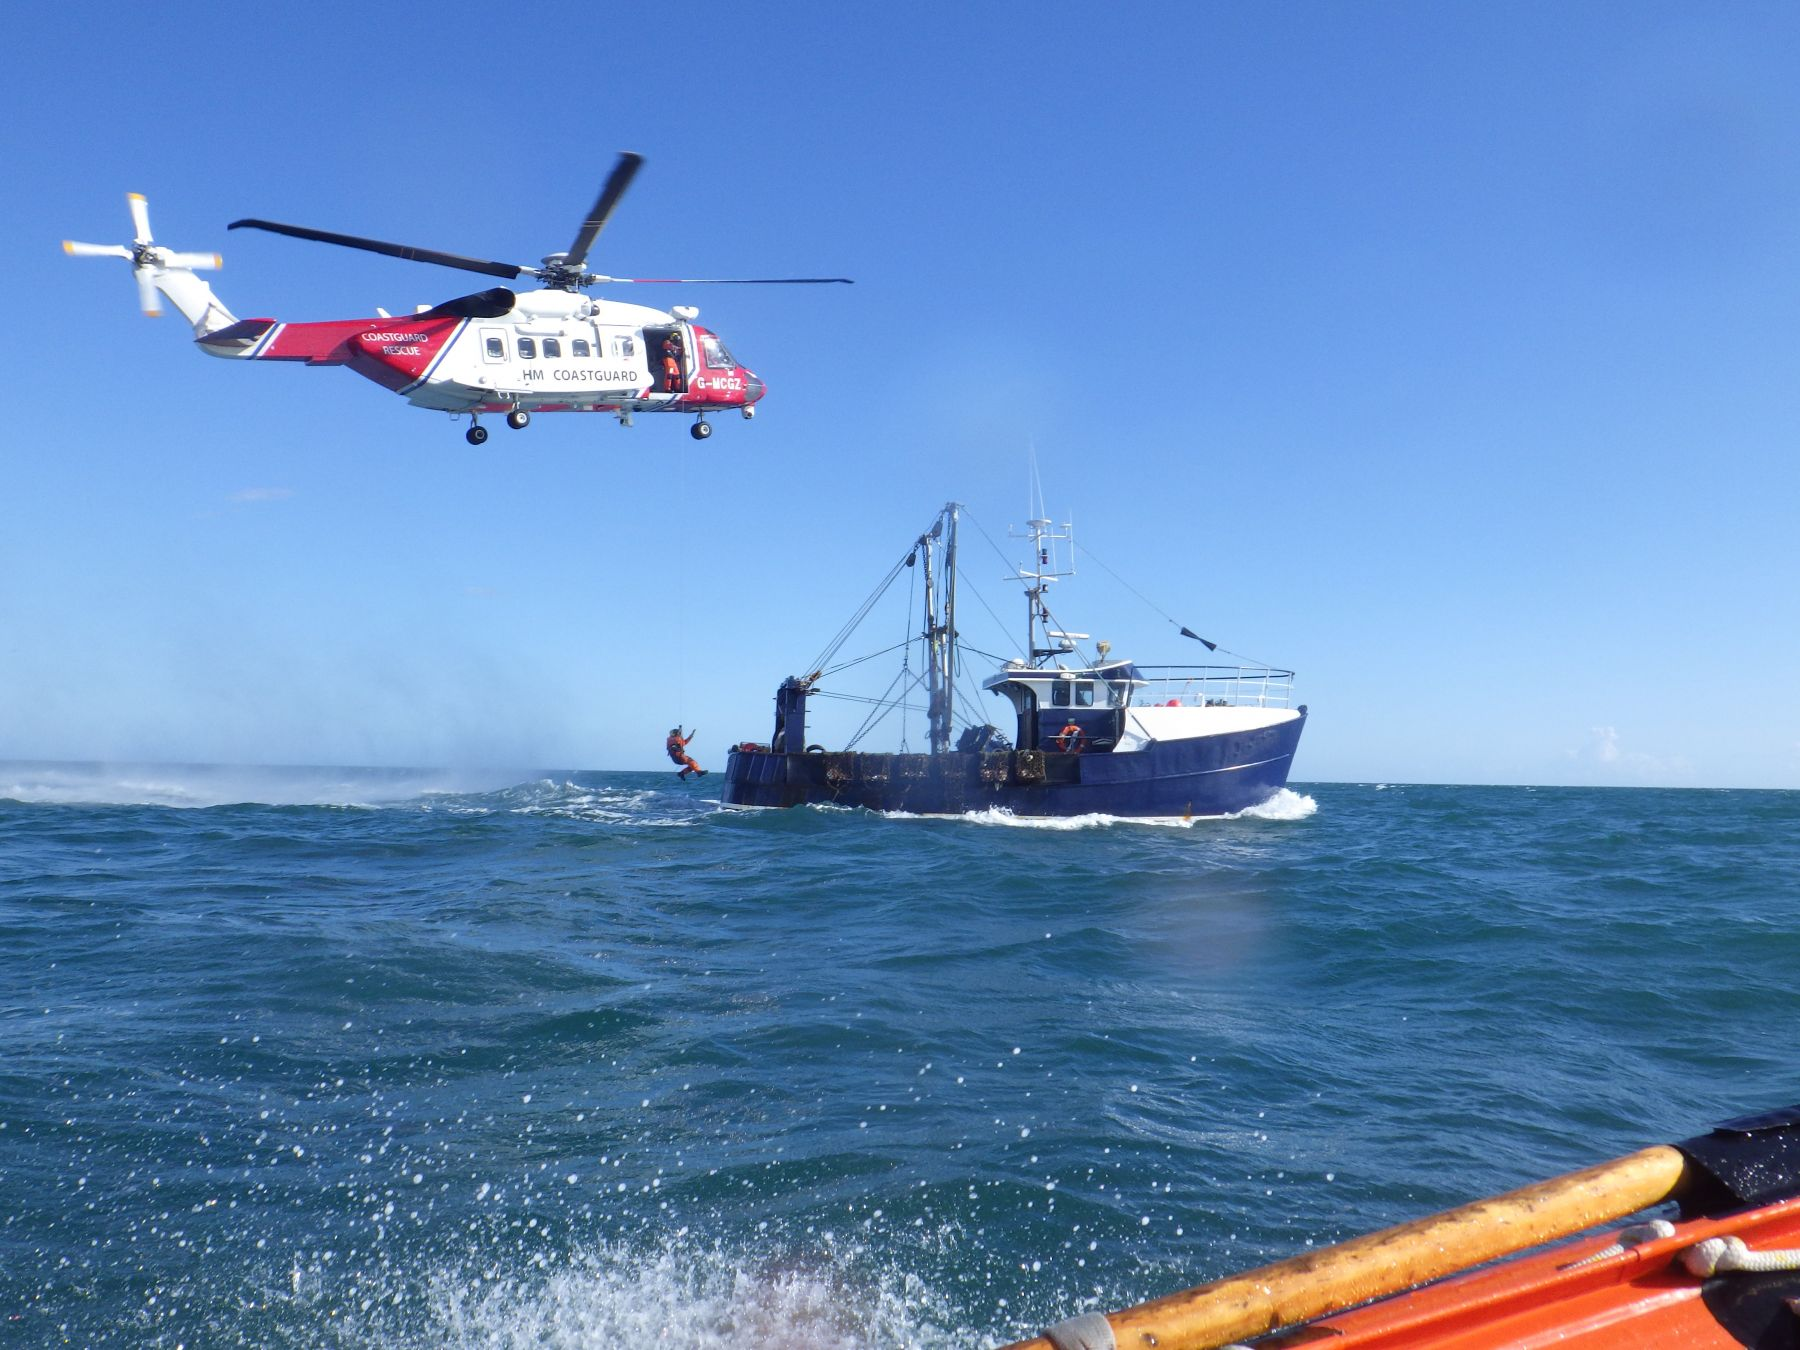 The Coastguard paramedic is winched aboard the fishing boat.